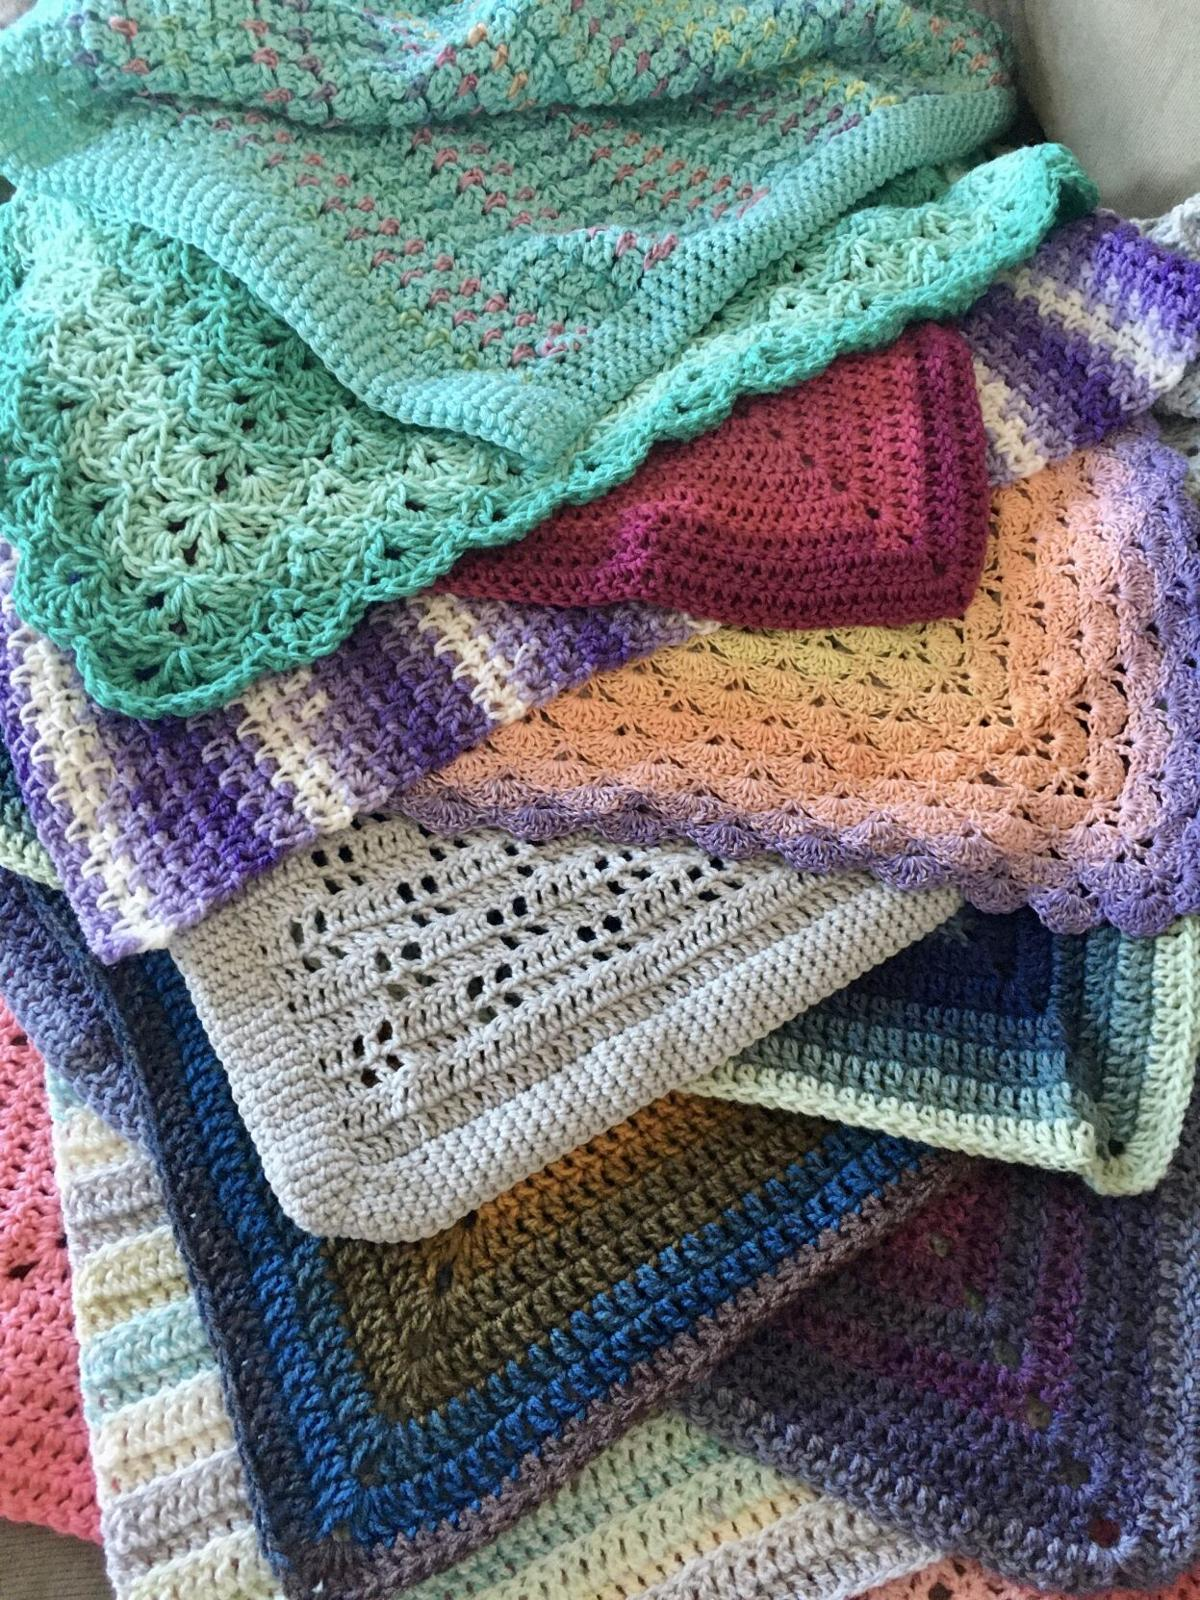 Atlantic Beach woman crochets baby blankets for newborns throughout pandemic